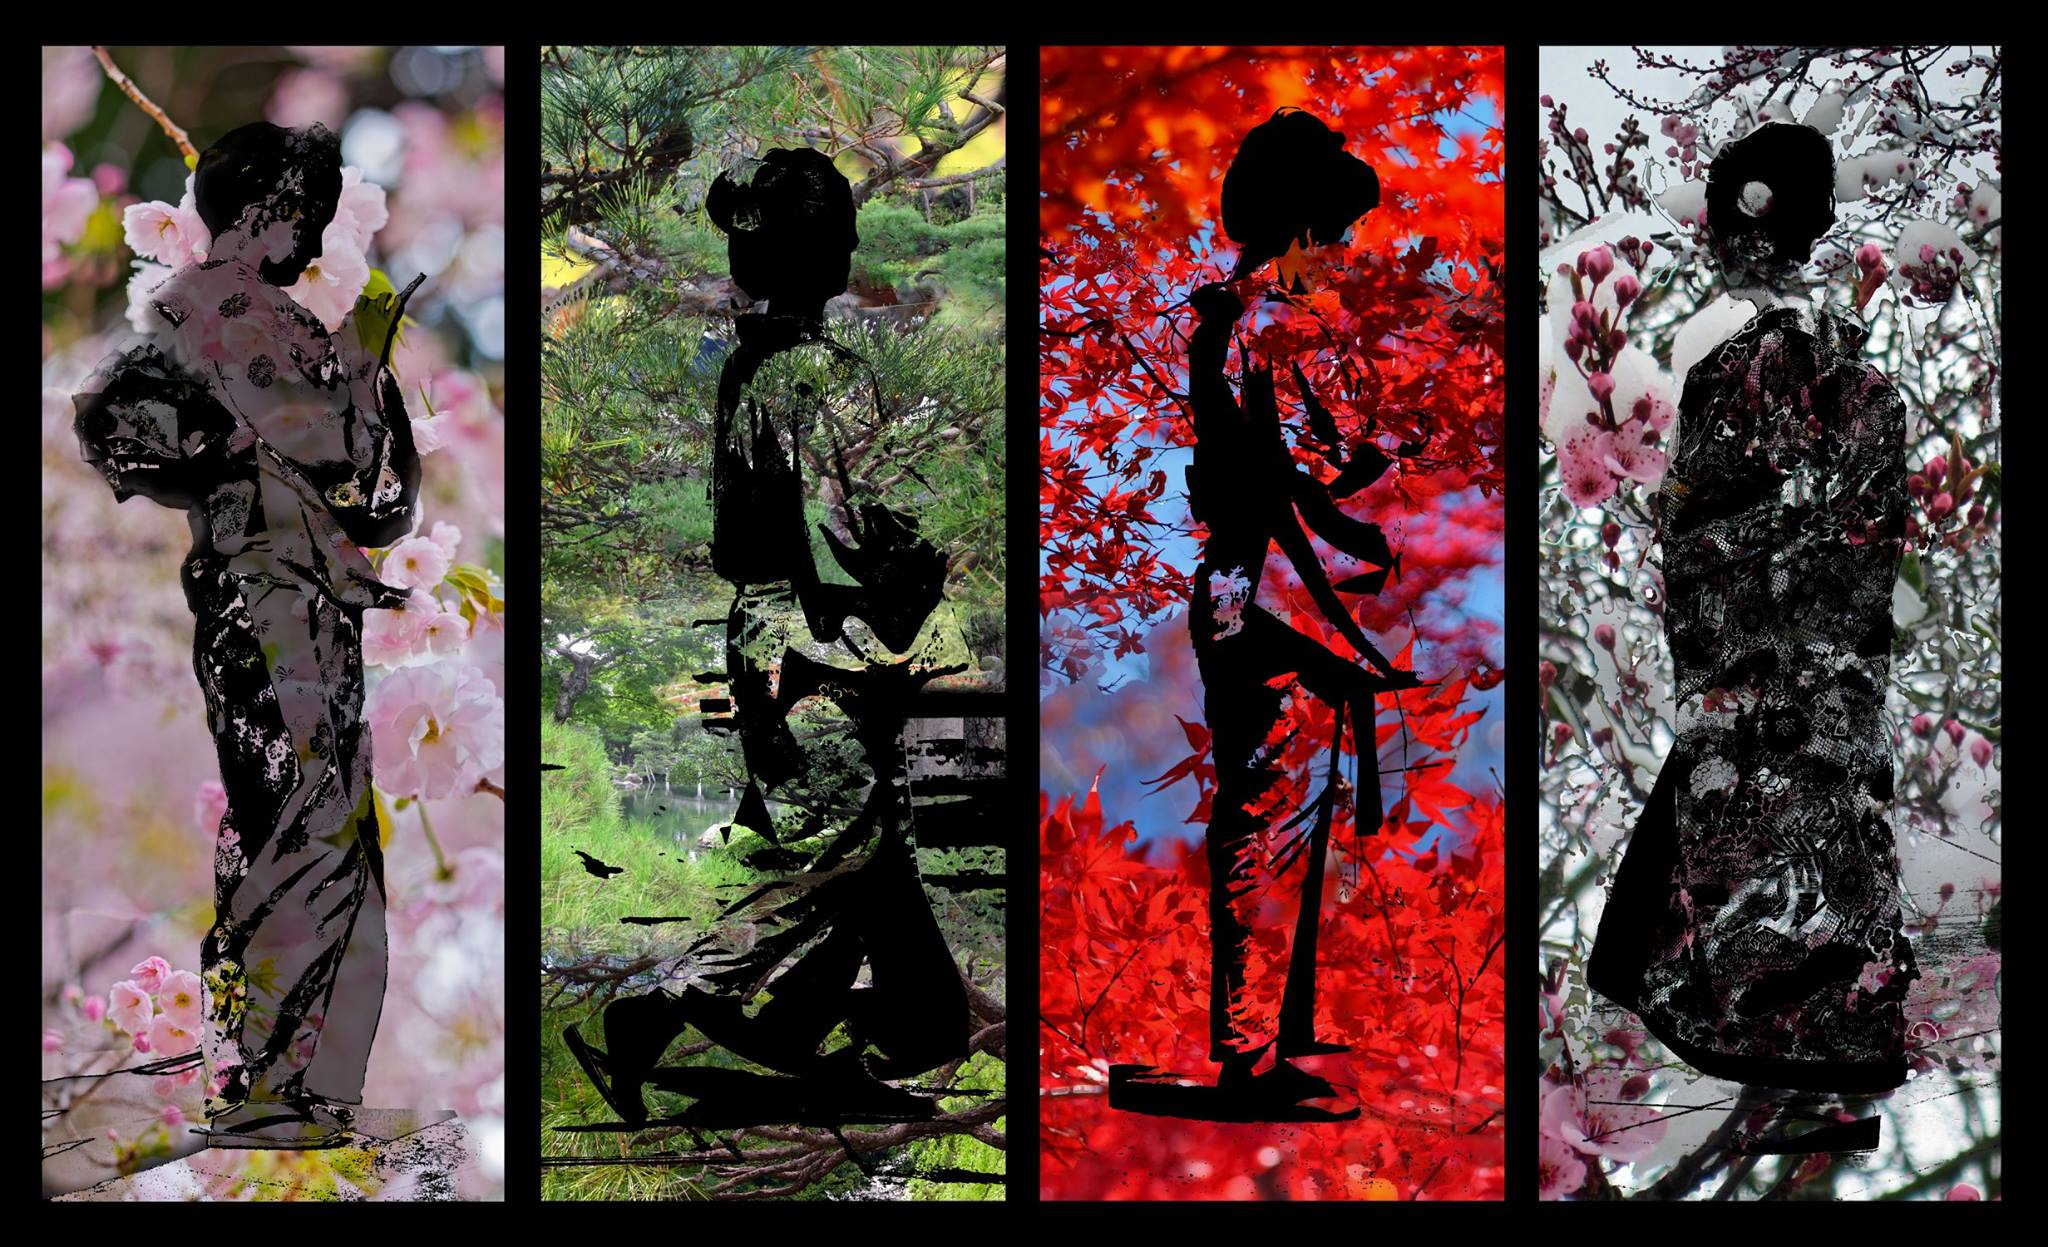 The Four Seasons of Japan